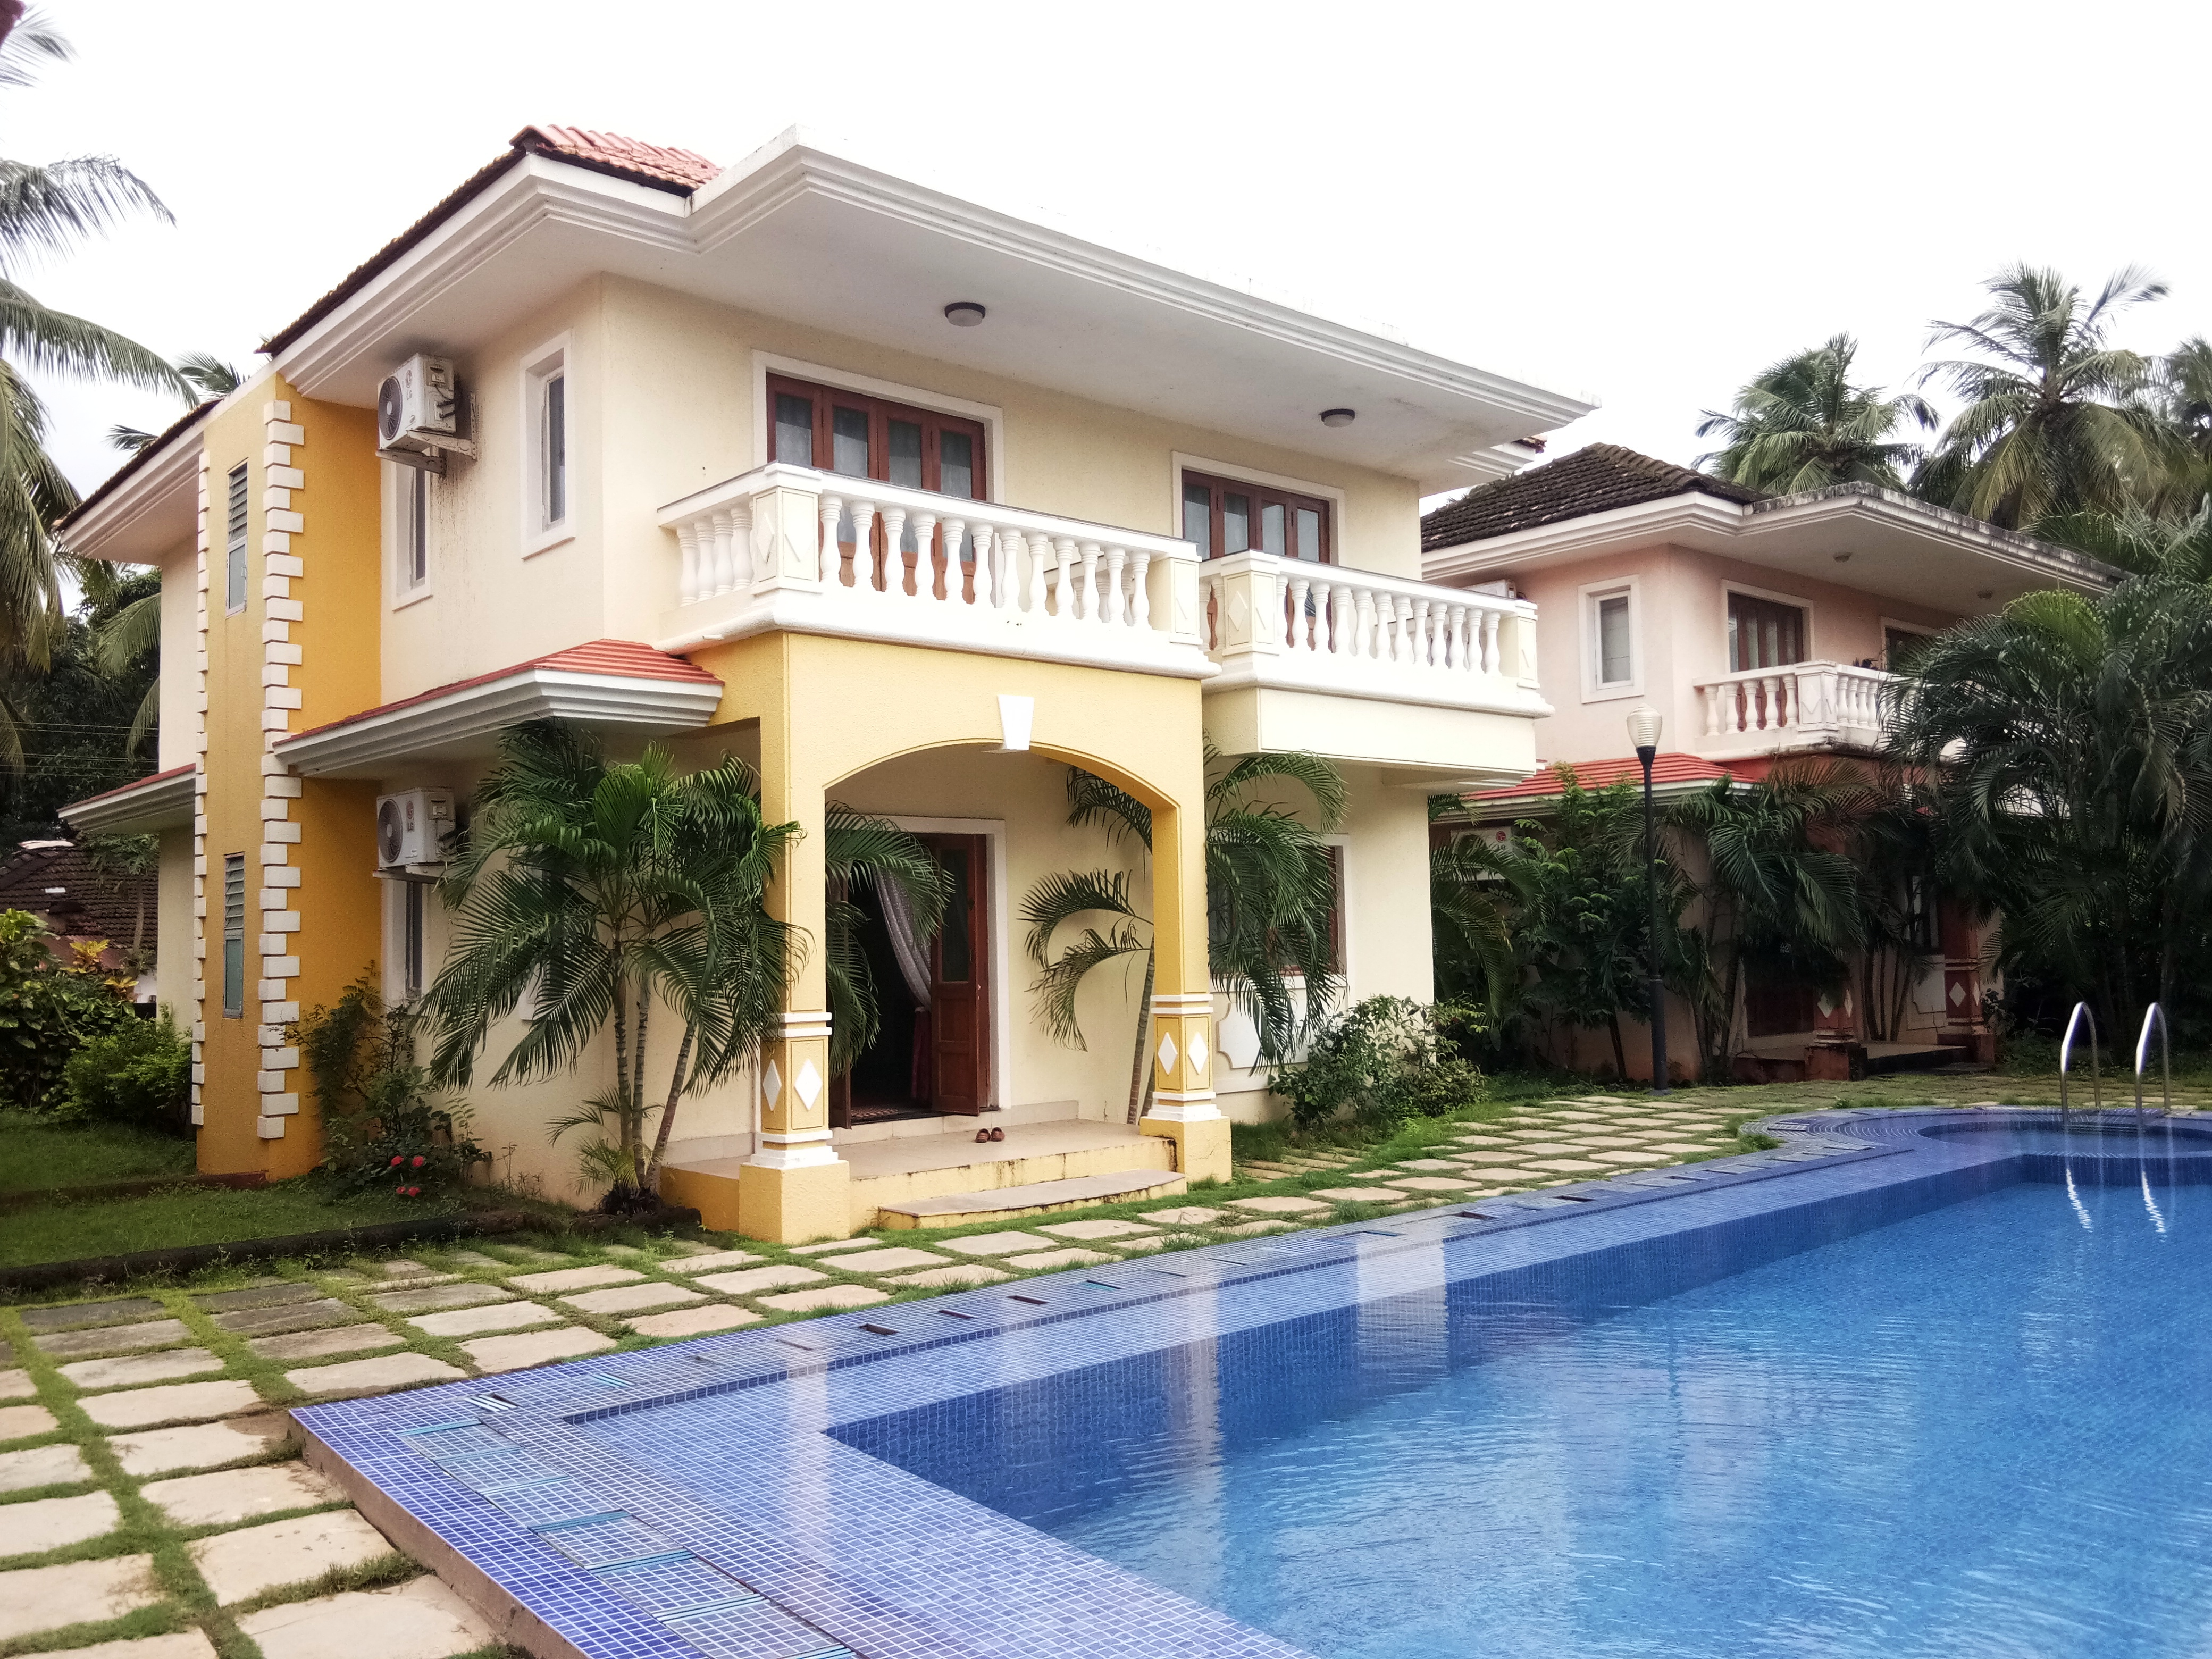 3bhk villa for sale in Arpora Goa